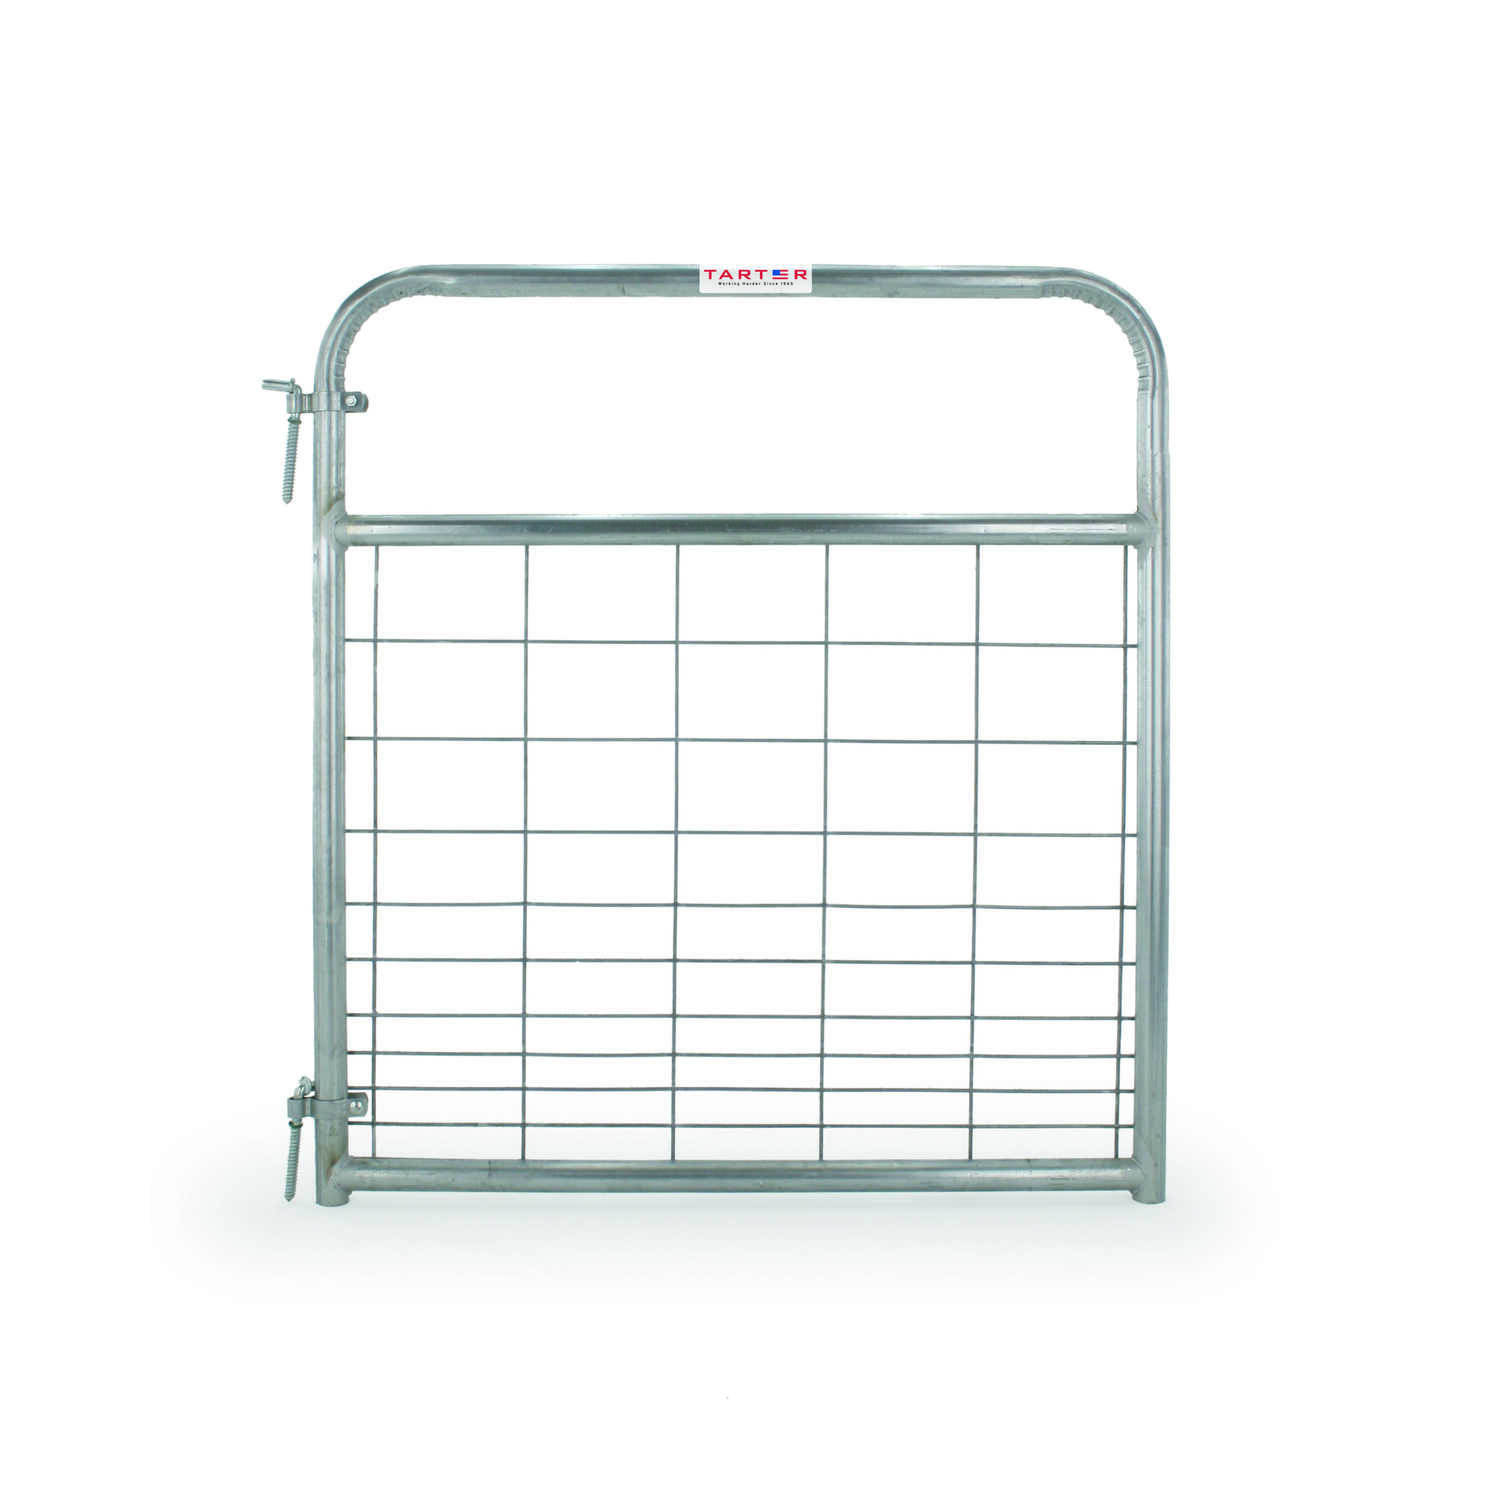 Tarter  50 in. H x 1.75 in. W x 4 ft. L Galvanized Steel  Wire Filled Gate